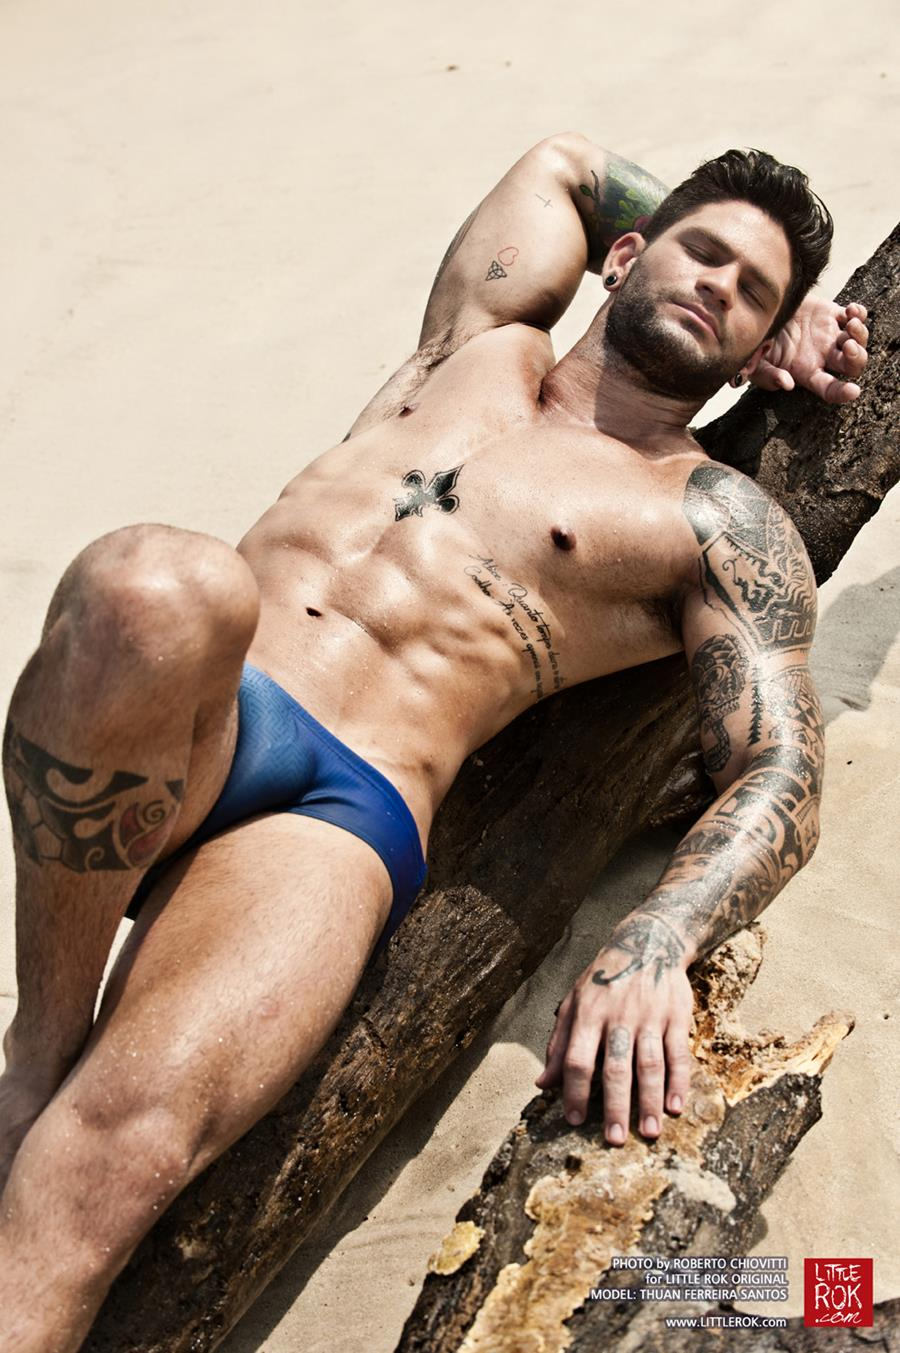 Photo by Roberto Chiovitti - Model Thuan Ferreira Santos - Swimwear Little Rok - shot in Rio De Janeiro